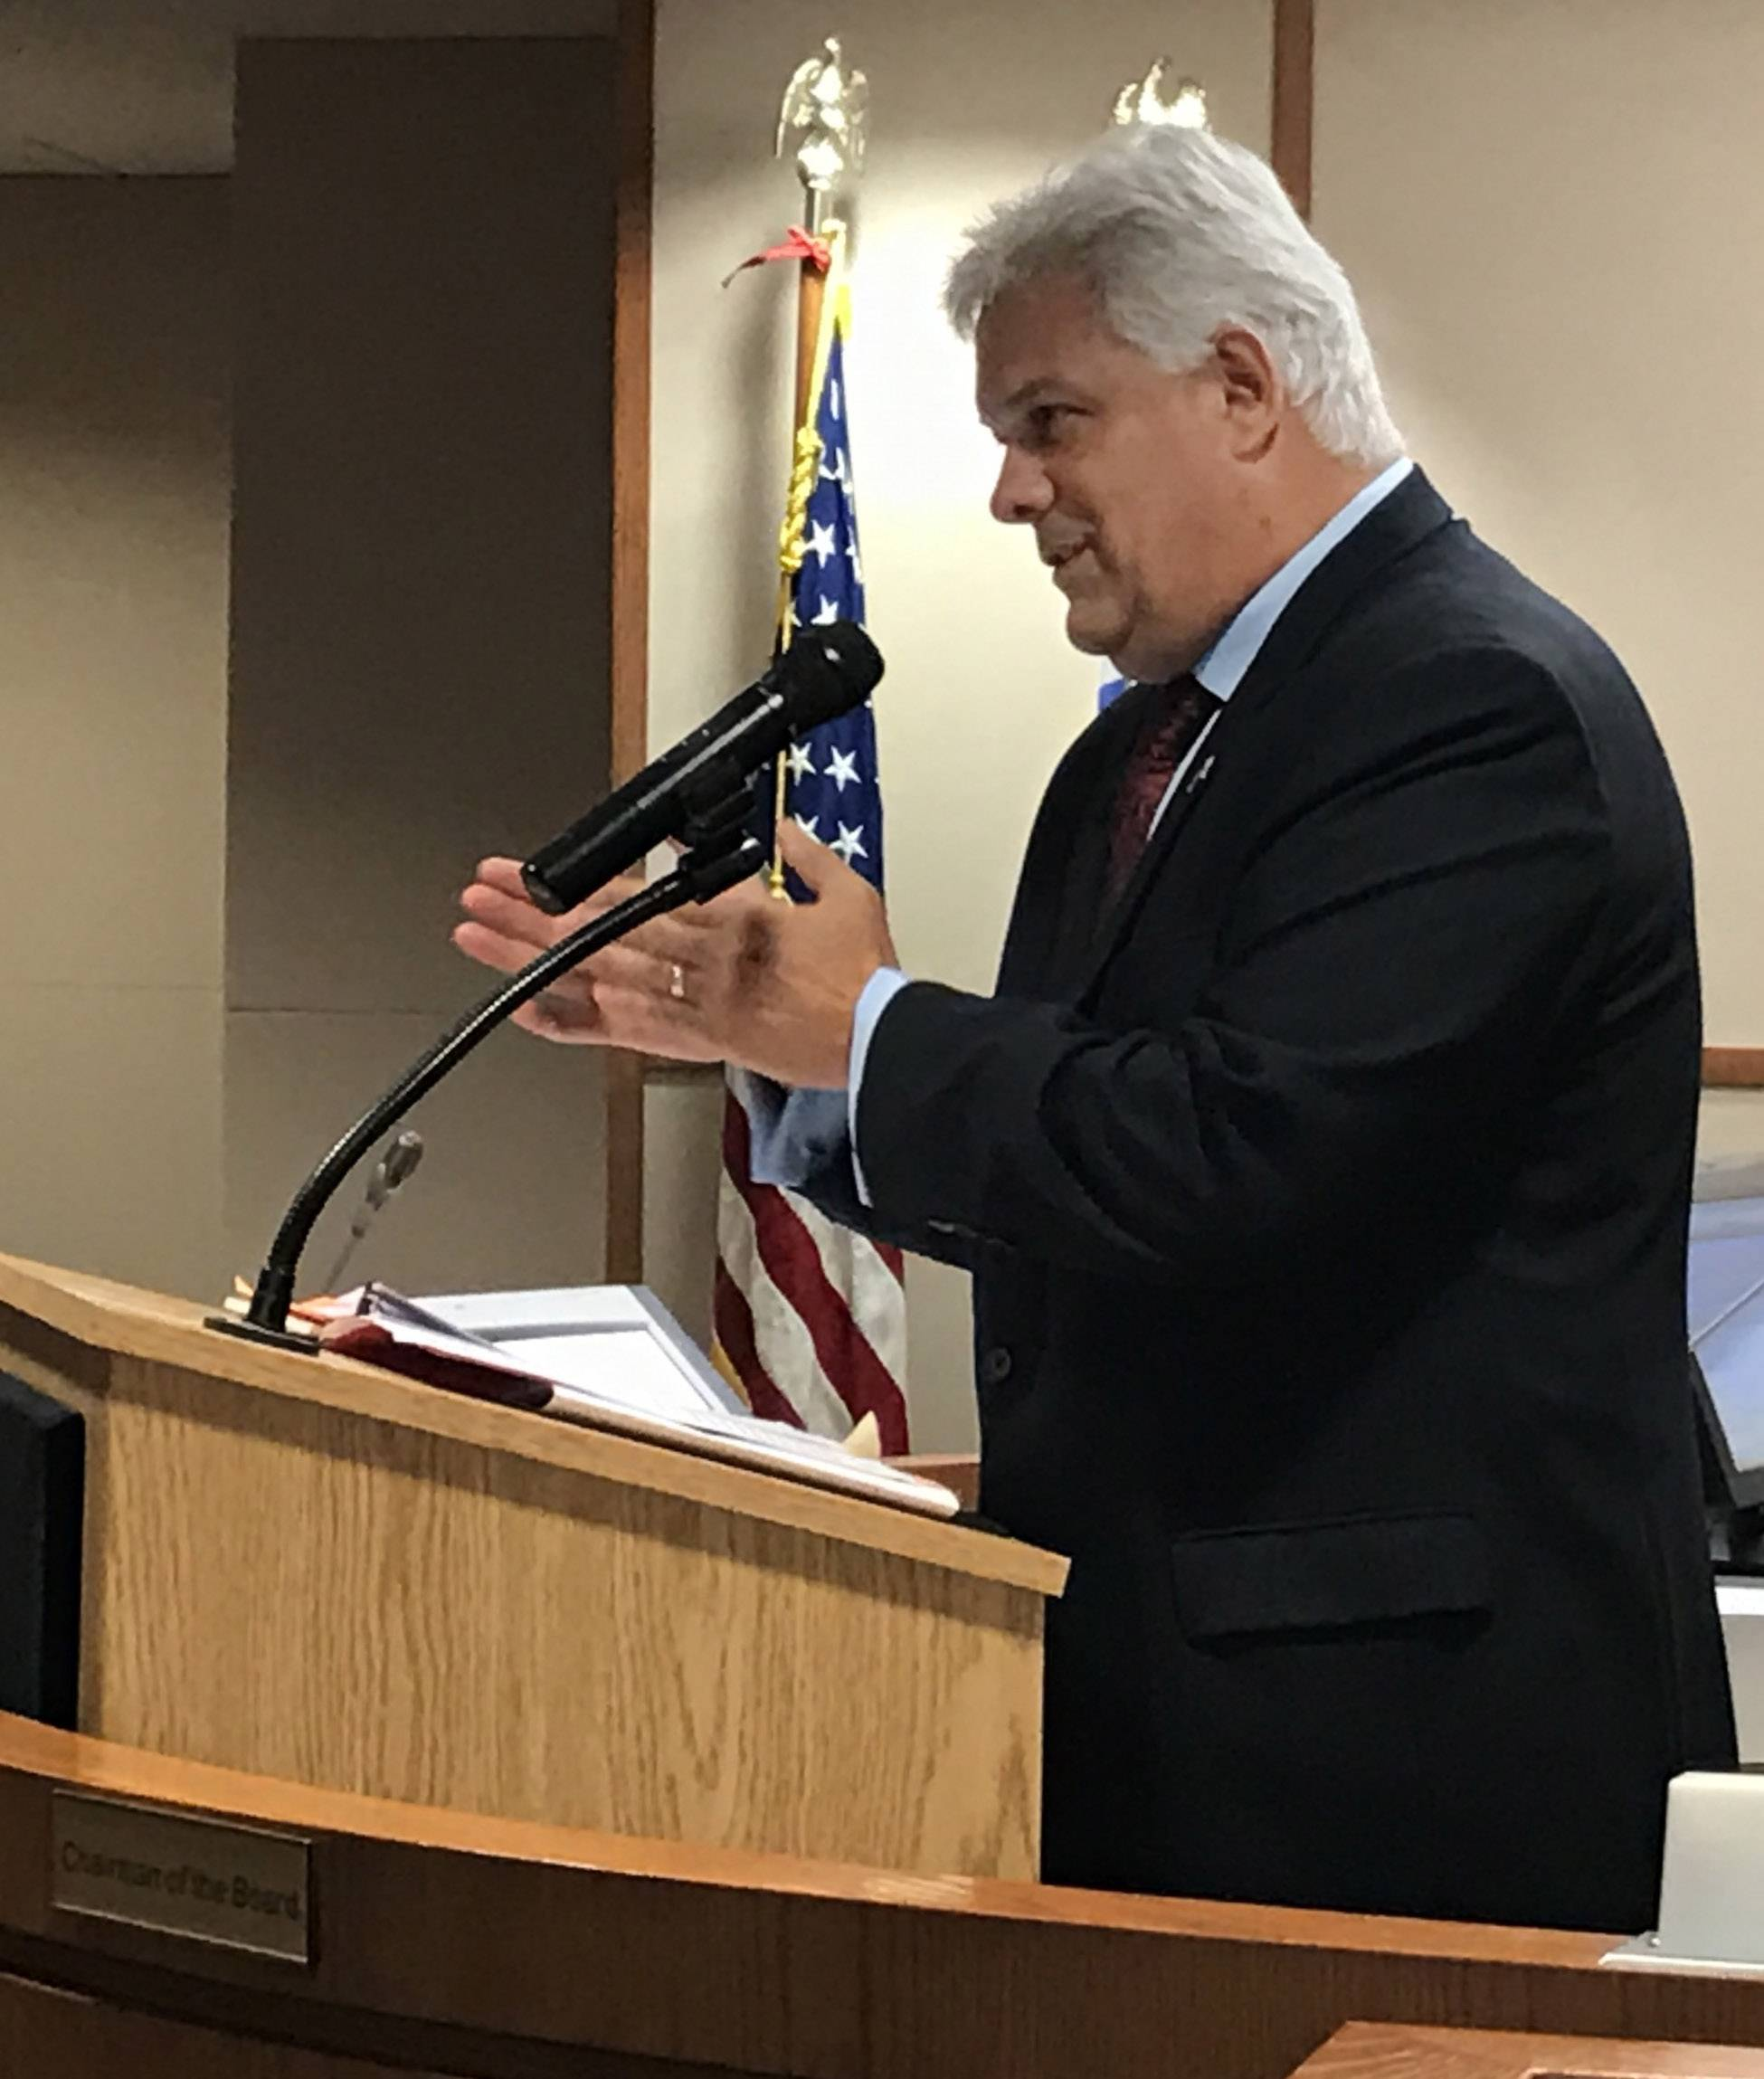 Members of the McHenry County Board criticized Chairman Jack Franks and staff members Thursday, saying they should've been more transparent in issues related to staff hirings and the Valley Hi Nursing Home.